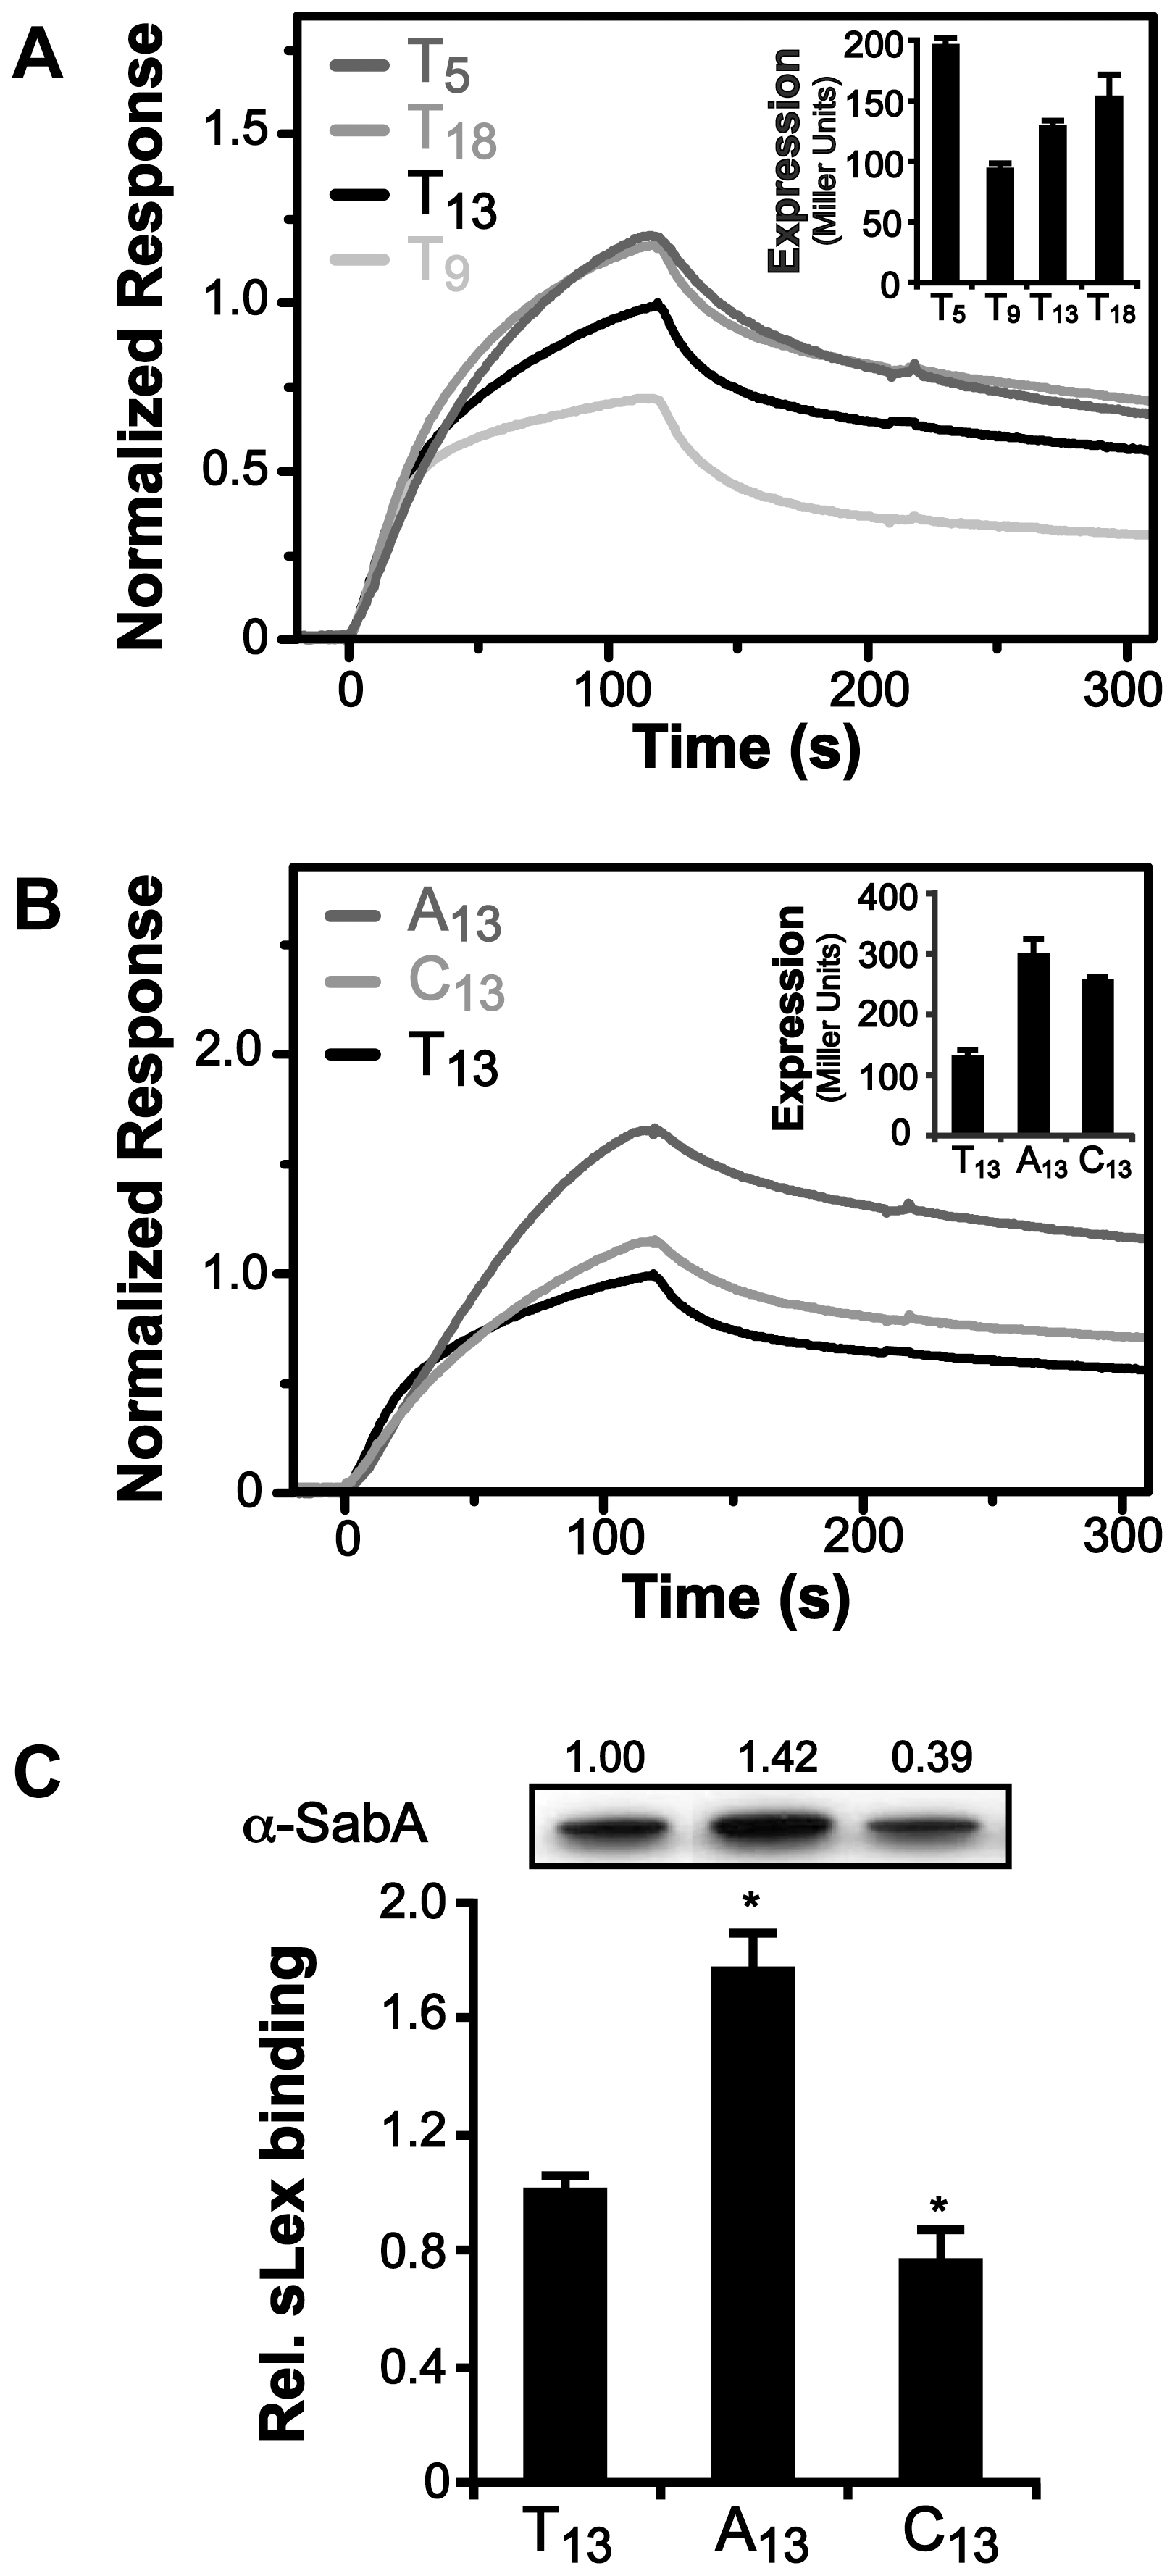 Binding of RNAP to P<i>sabA</i> DNA with varying tract length and nucleotide composition.